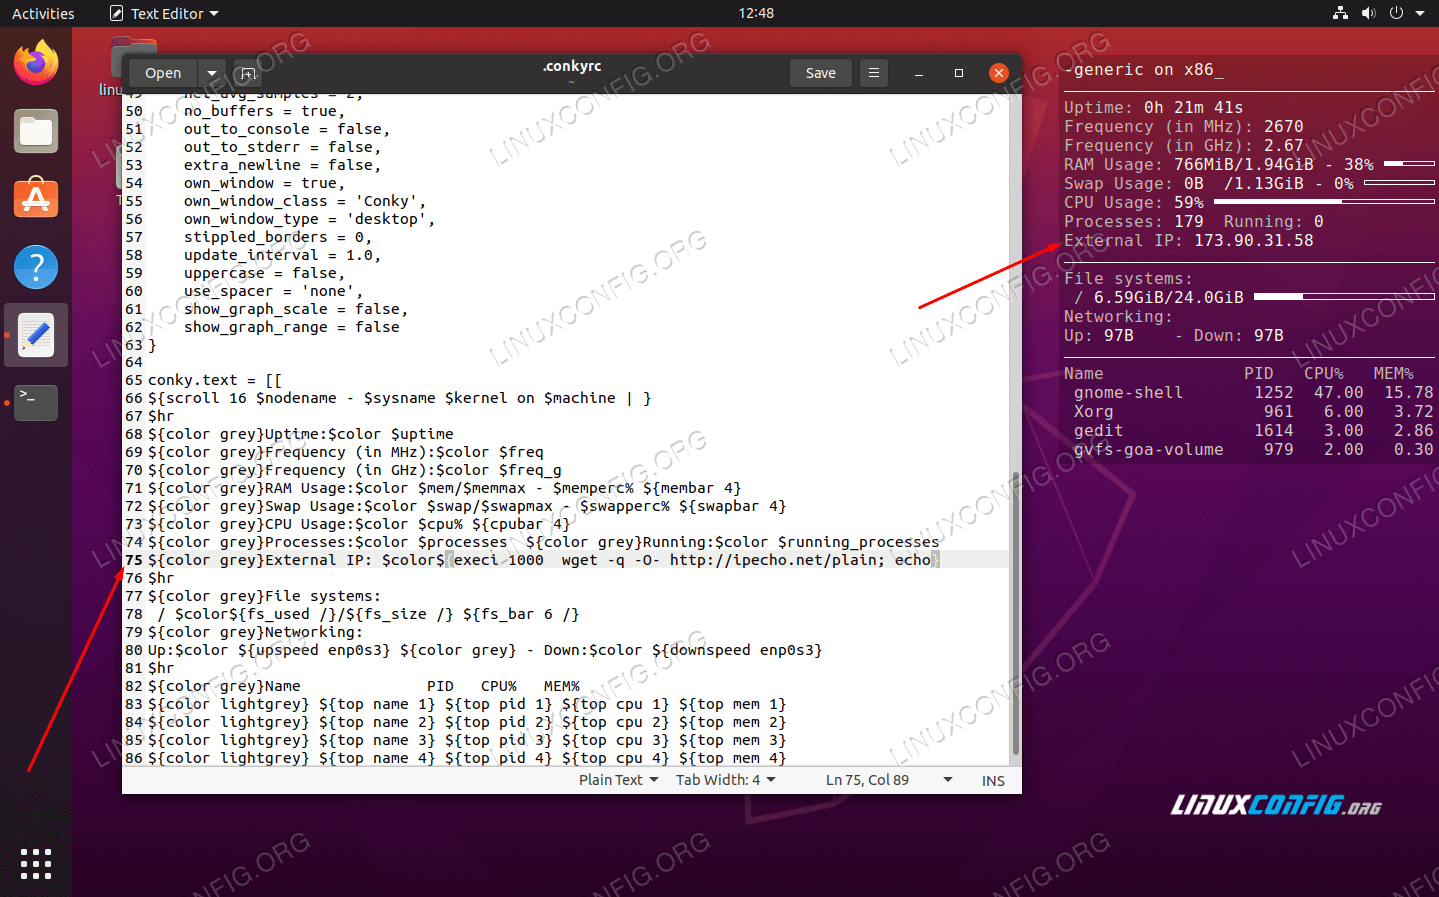 Conky is now reporting the external IP address of our system